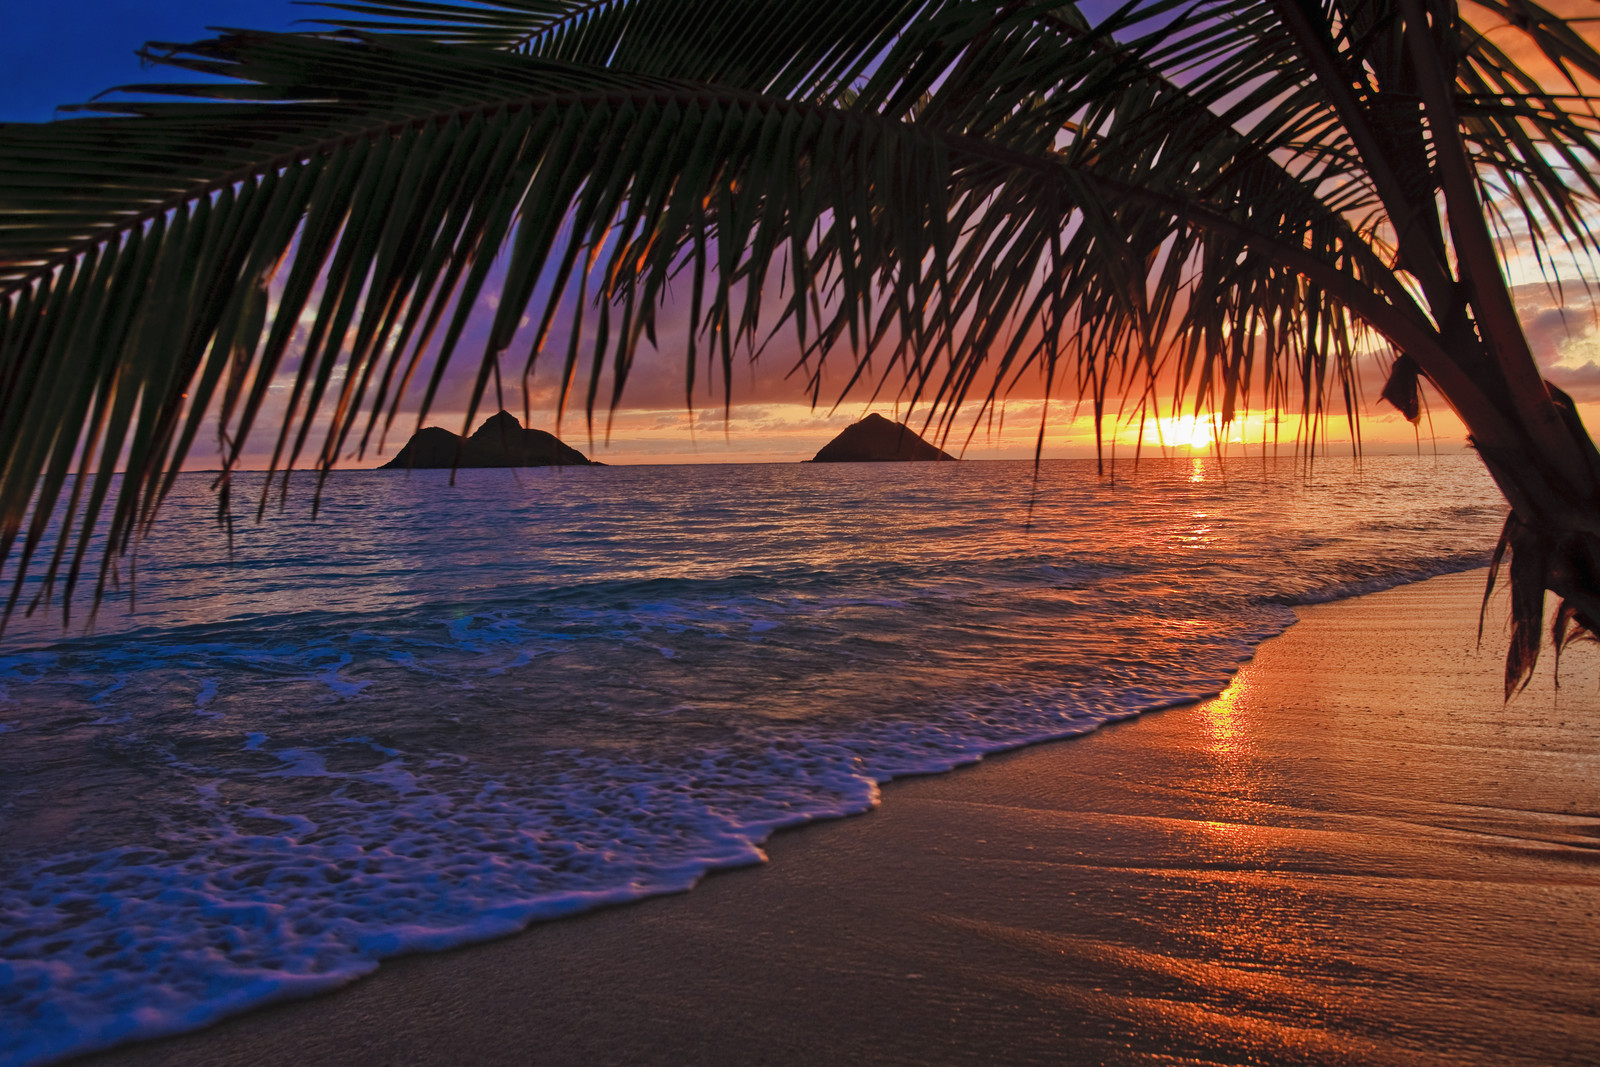 Sunrise on a Hawaiian beach showing palm trees and waves